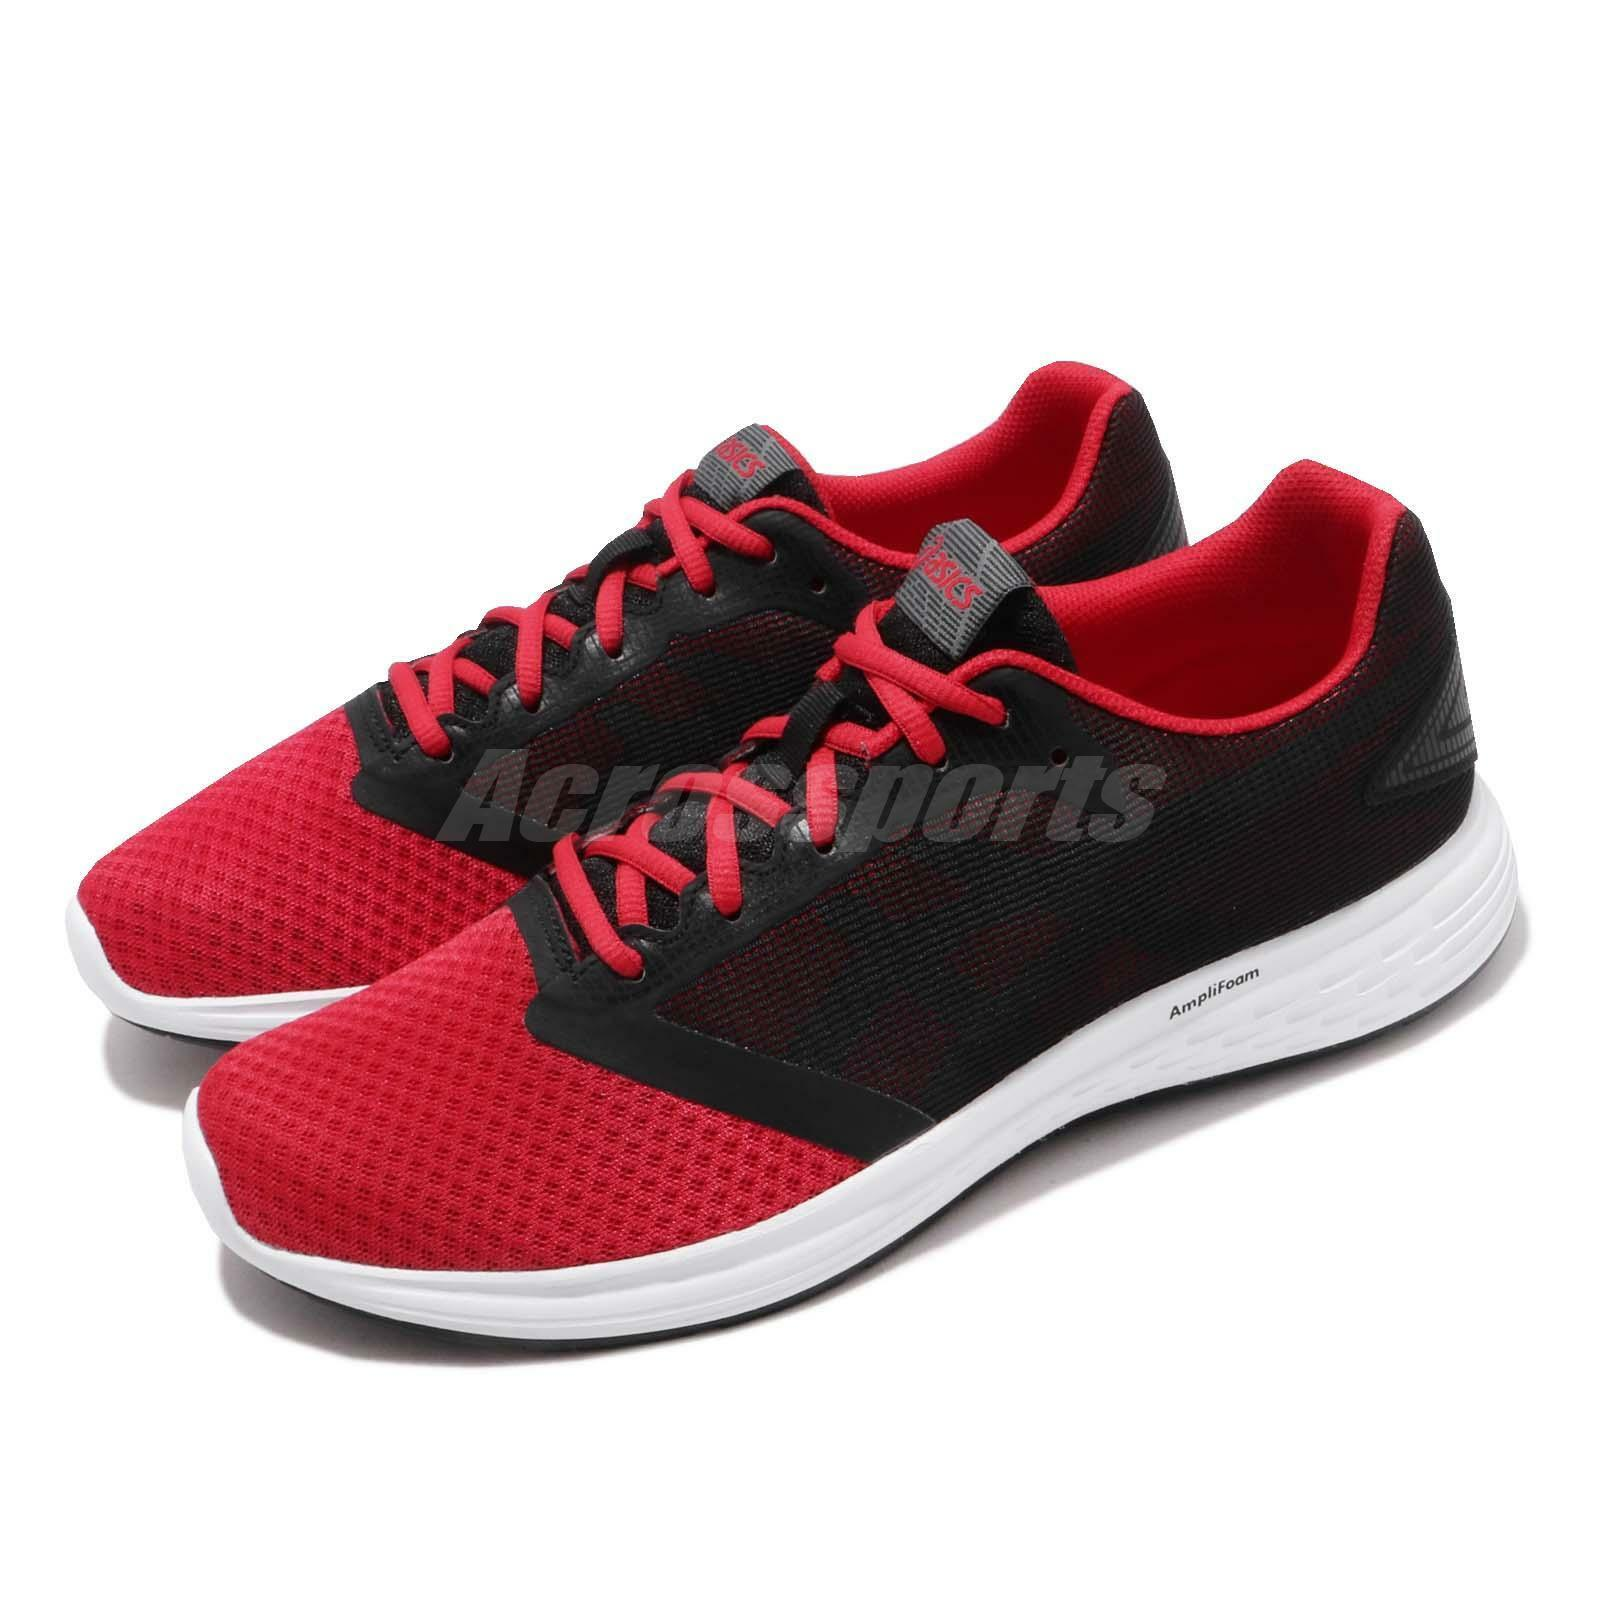 Asics Patriot 10 Classic Red Steel Grey Men Running shoes Sneakers 1011A131-600